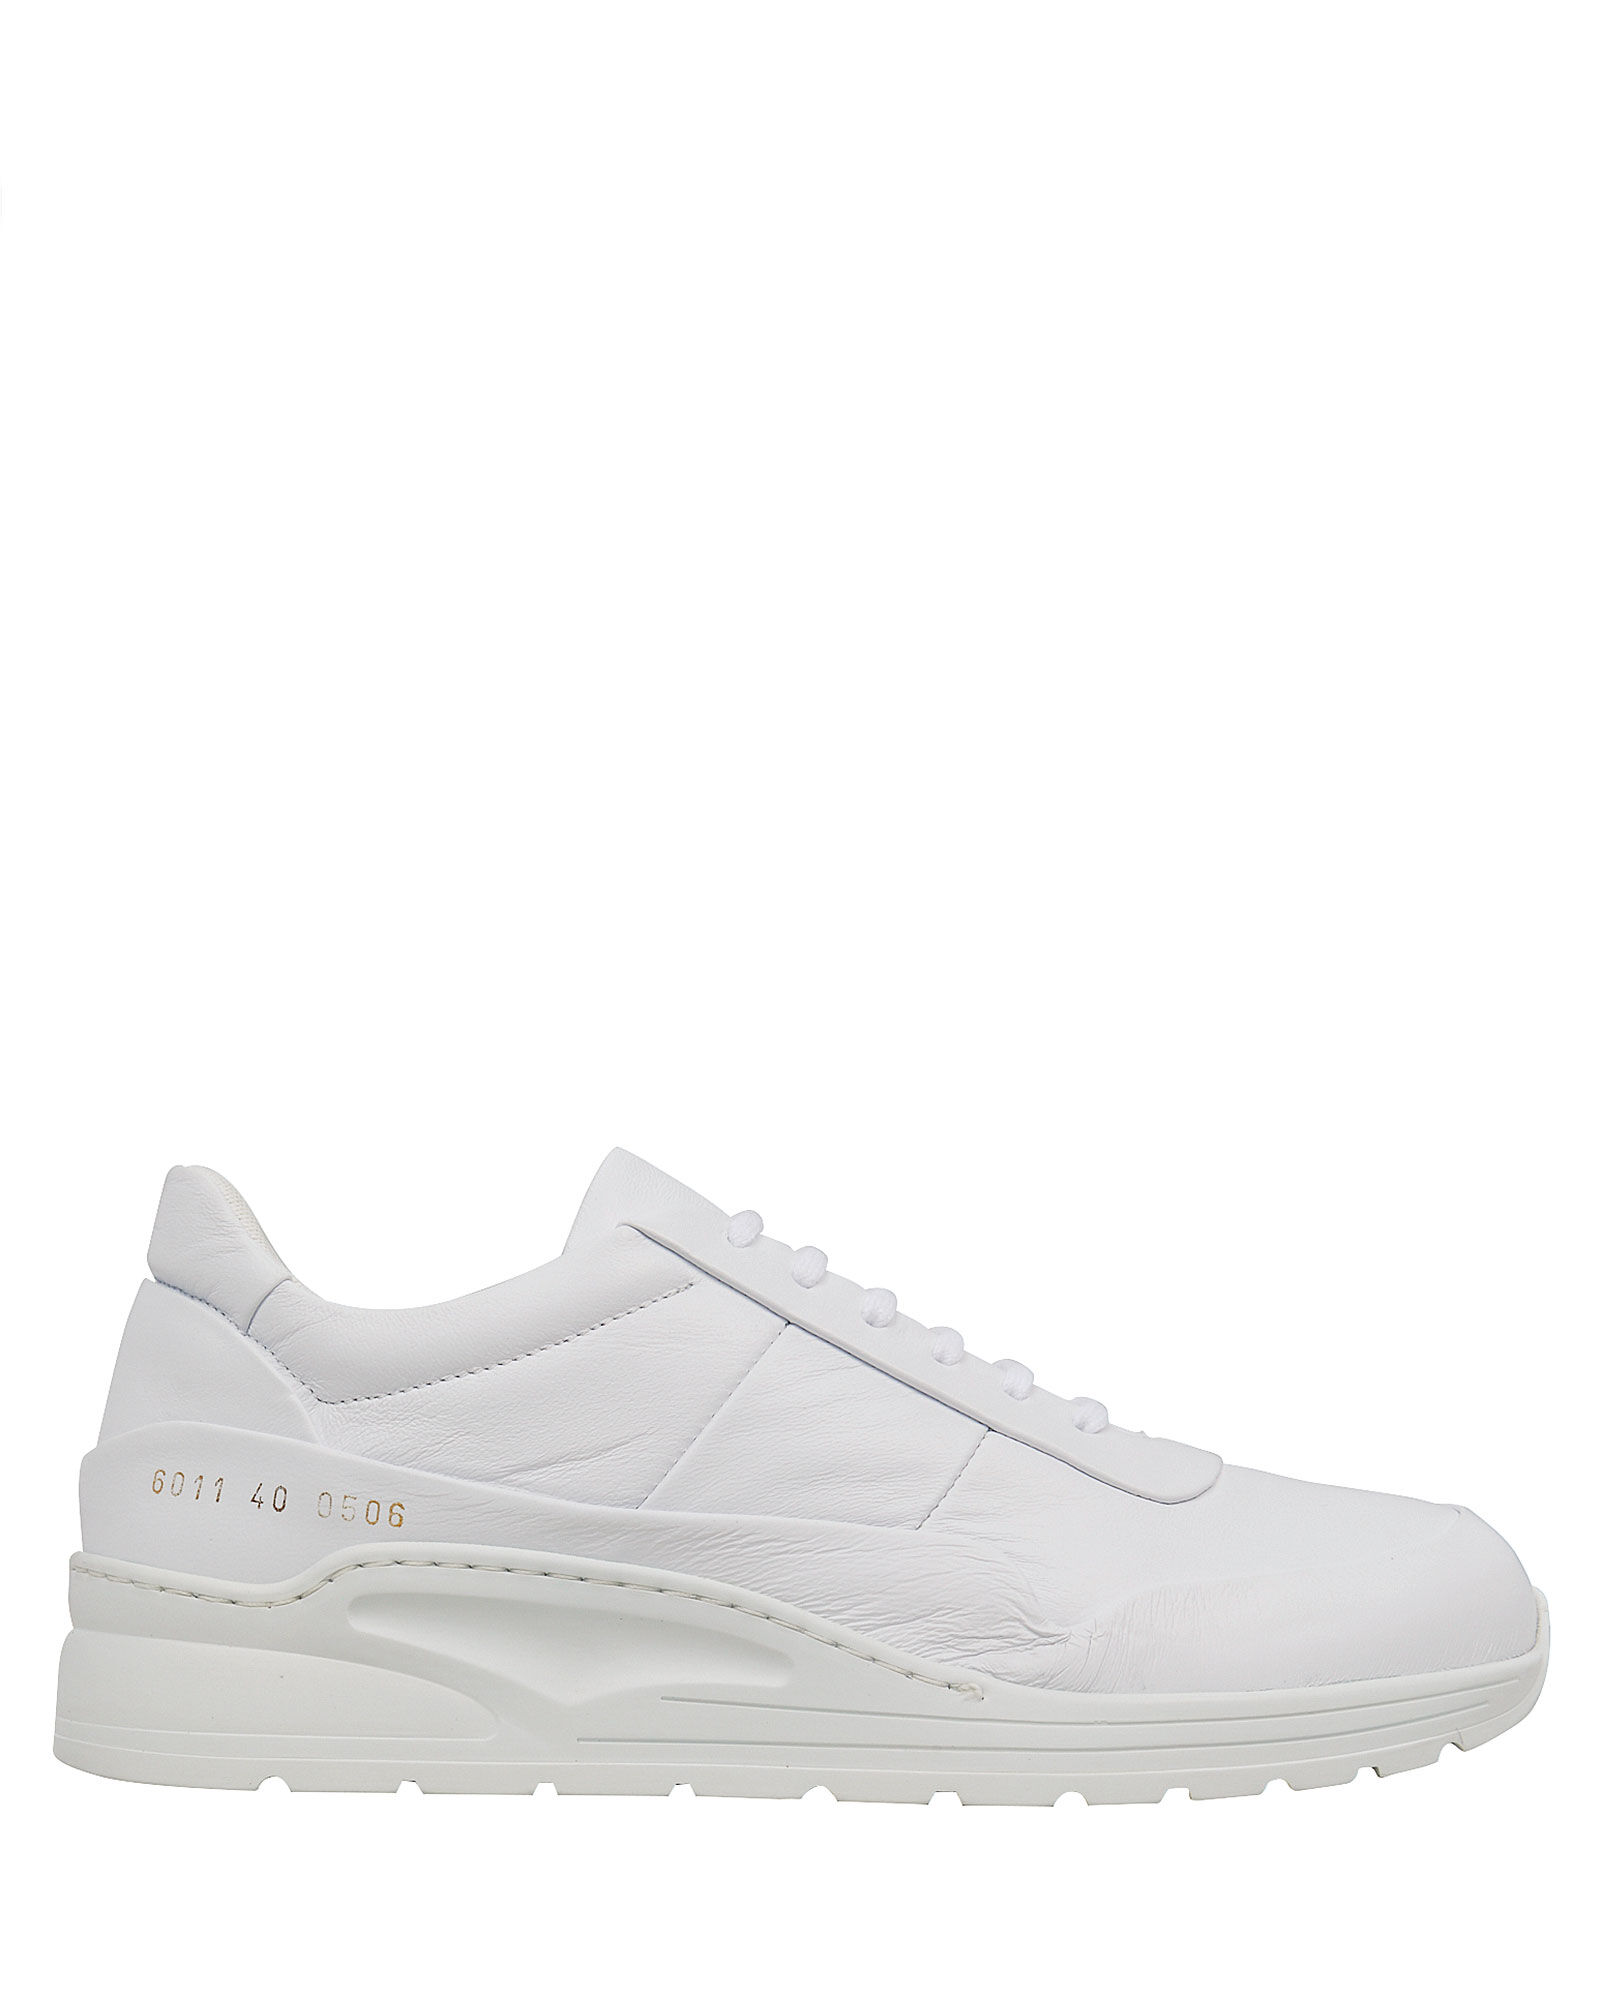 Cross Trainer Leather Sneakers, WHITE, hi-res